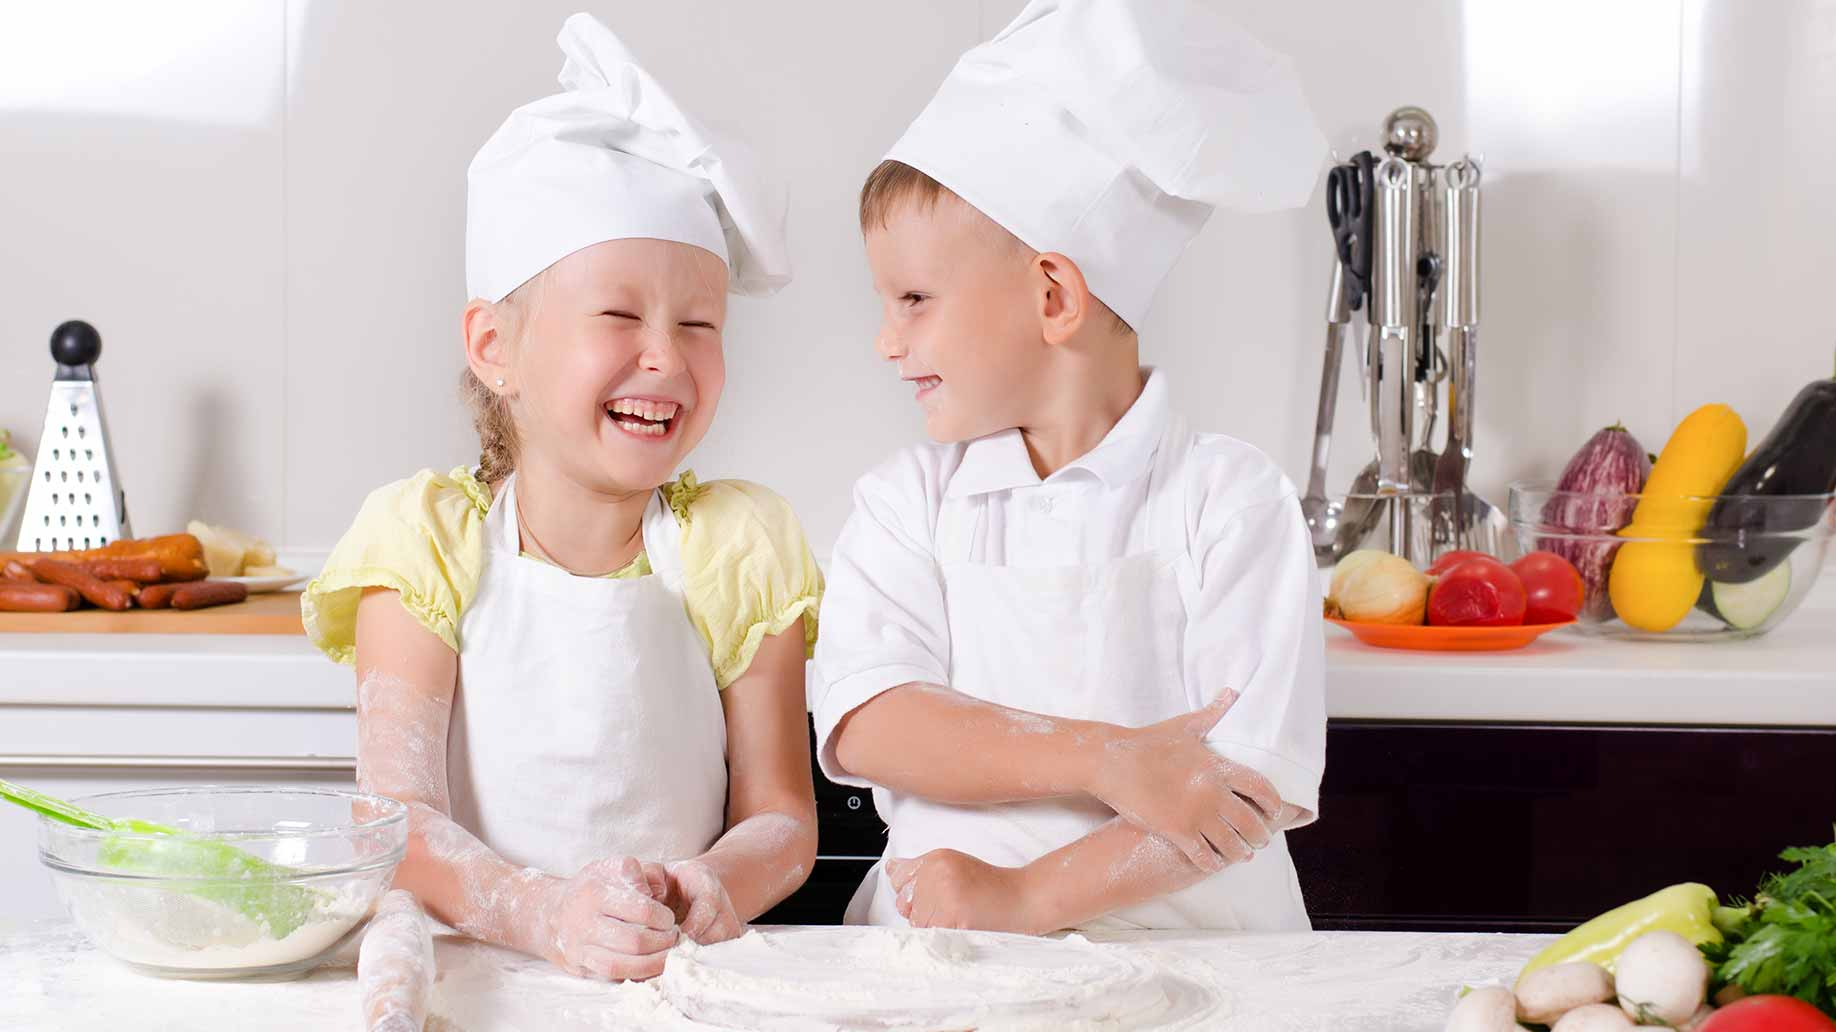 young girl and boy wearing chef hats and making pastry